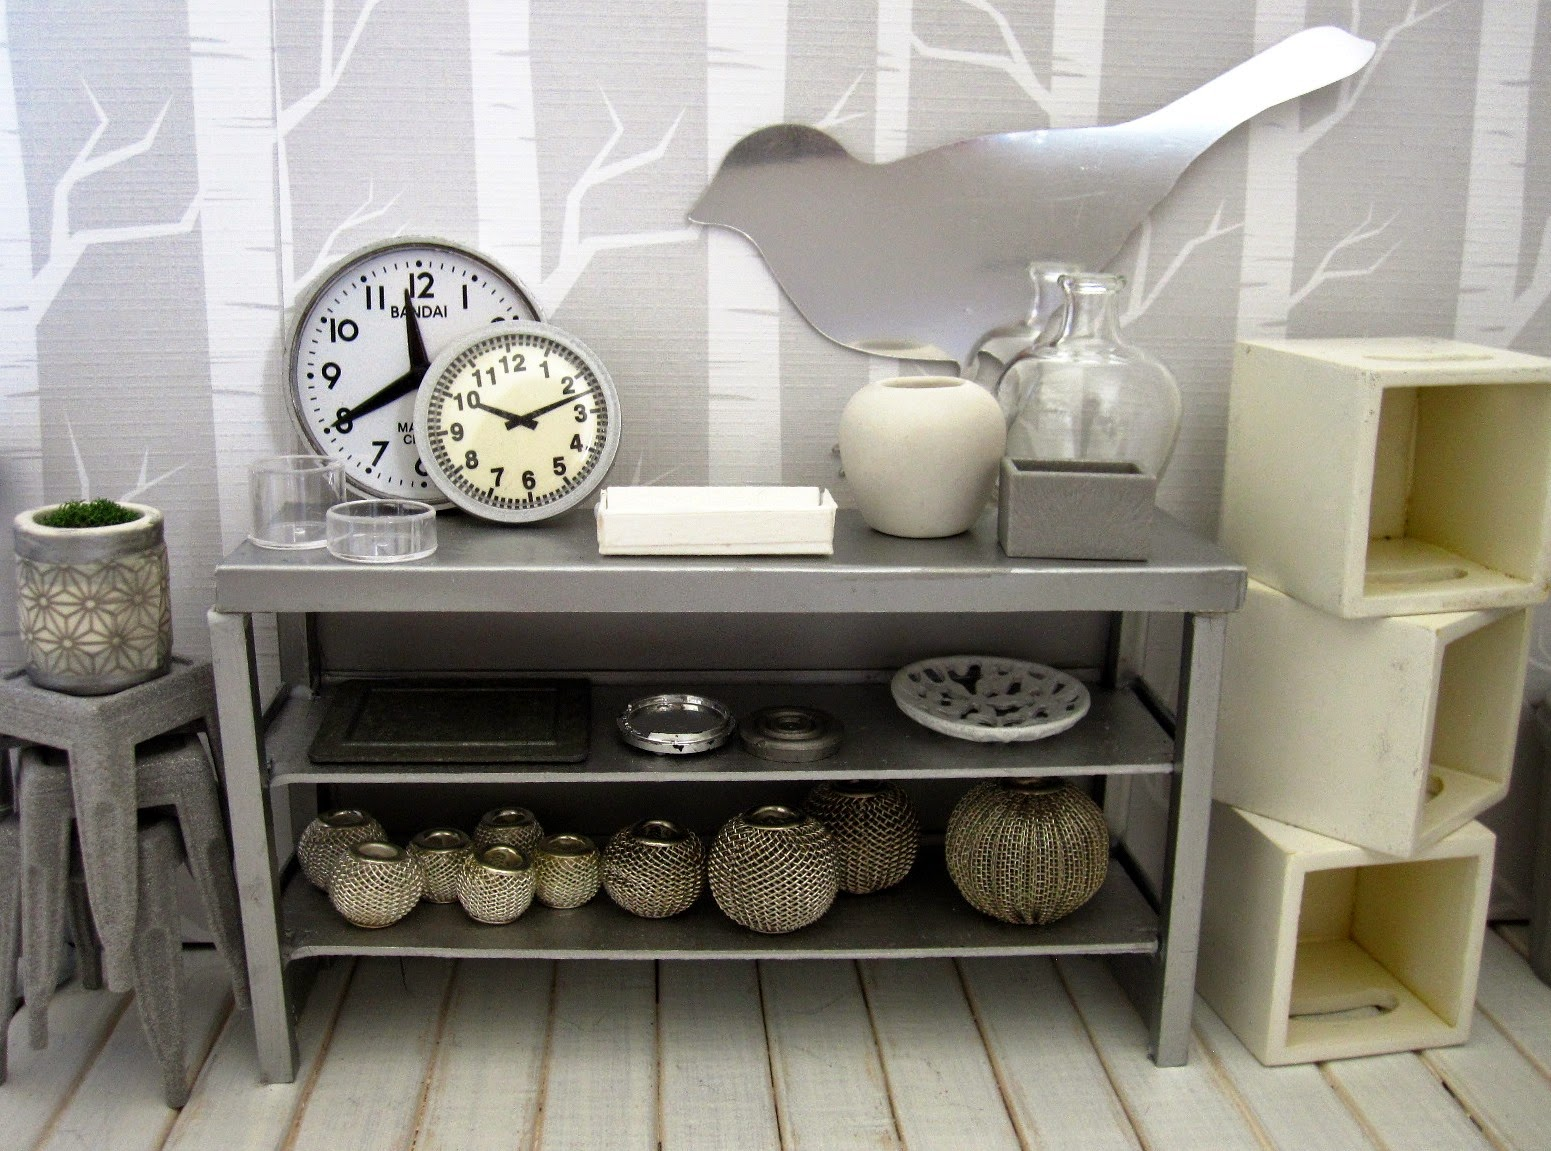 View of a modern dolls' house miniature homeware shop in grey and white. On display is a stack of cafe stools and a grey metal shelving unit with various grey-coloured decor pieces. To the right is a pile of white storage boxes.